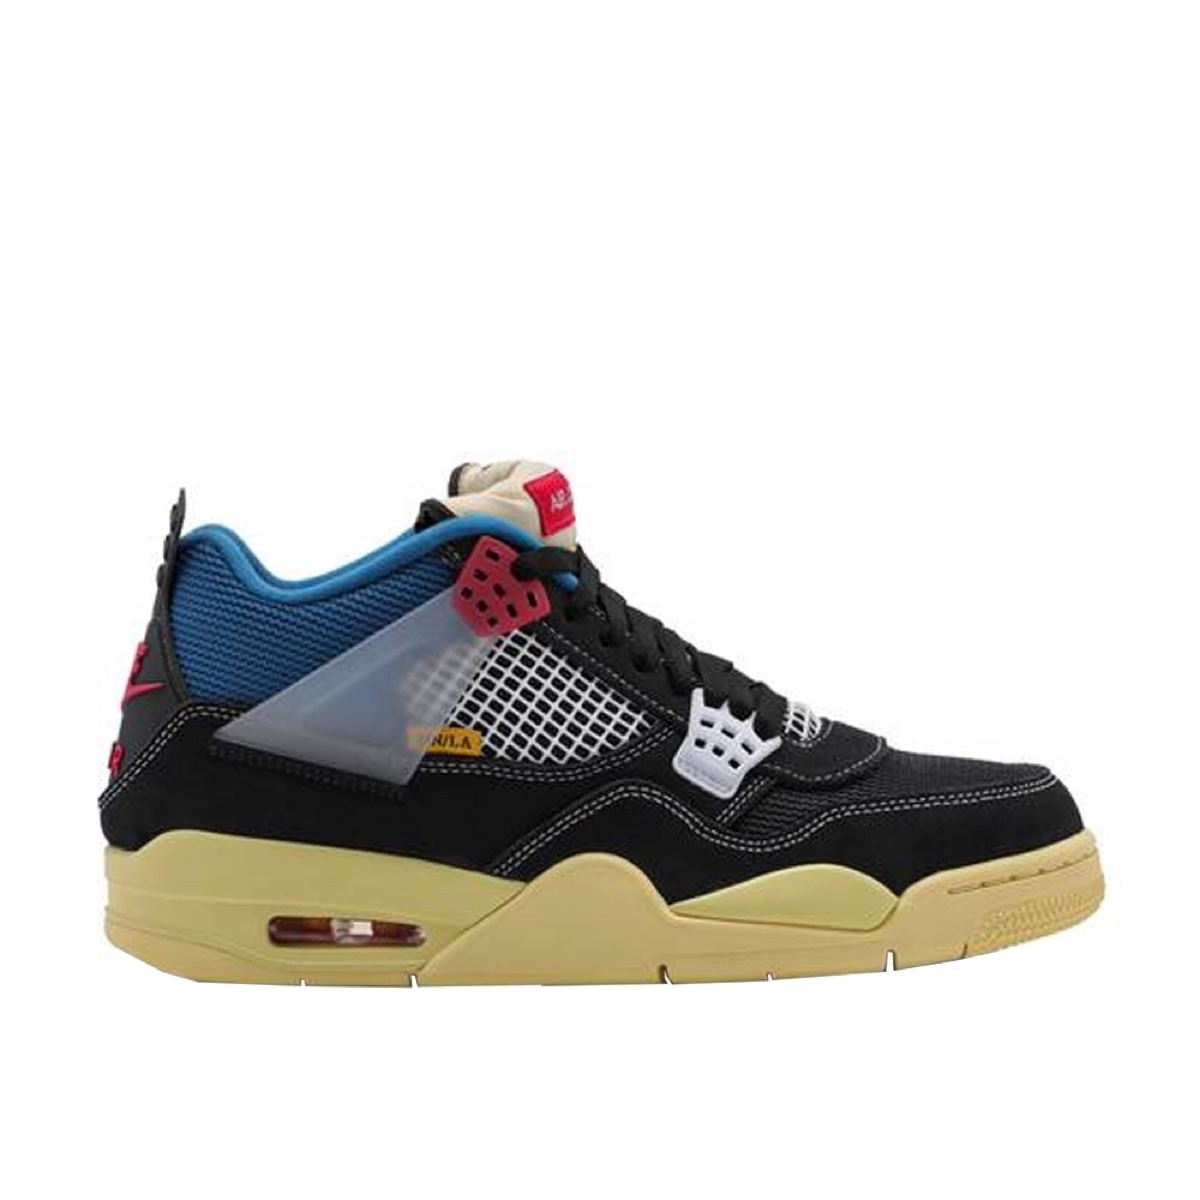 Jordan 4 X Union LA Retro Off Noir